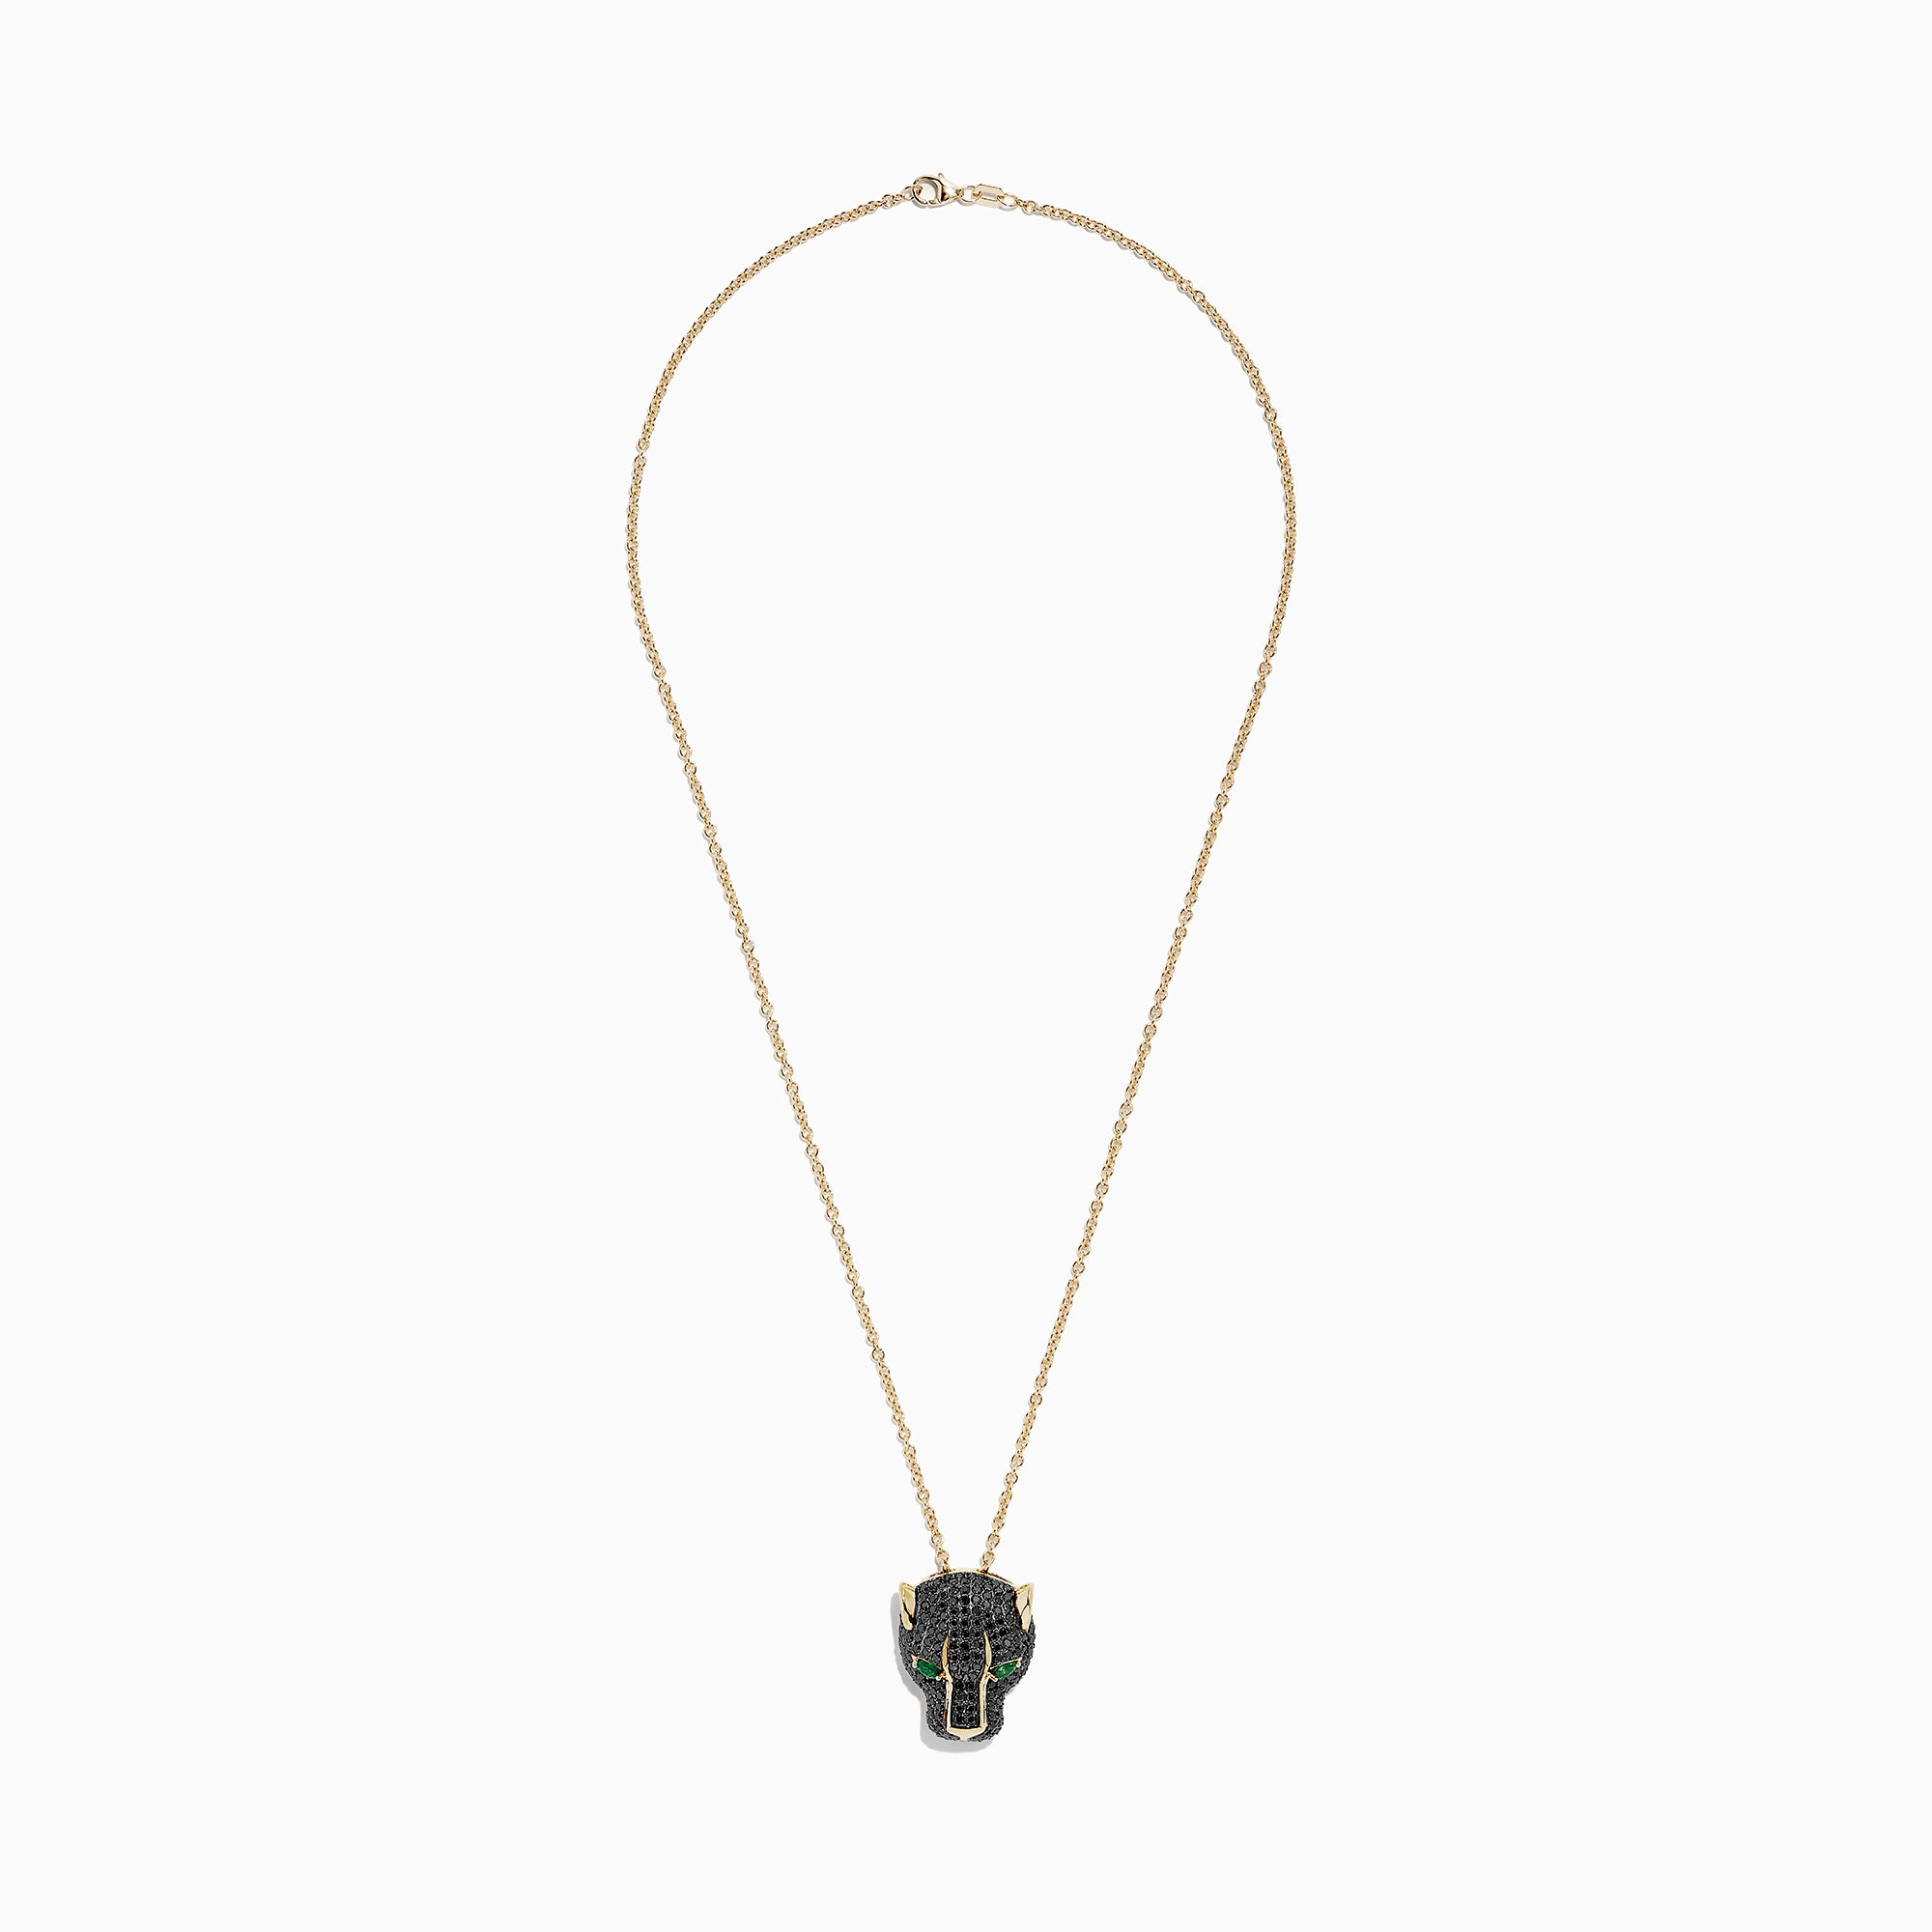 Effy Signature 14K Yellow Gold Black Diamond & Emerald Pendant, 3.23 TCW